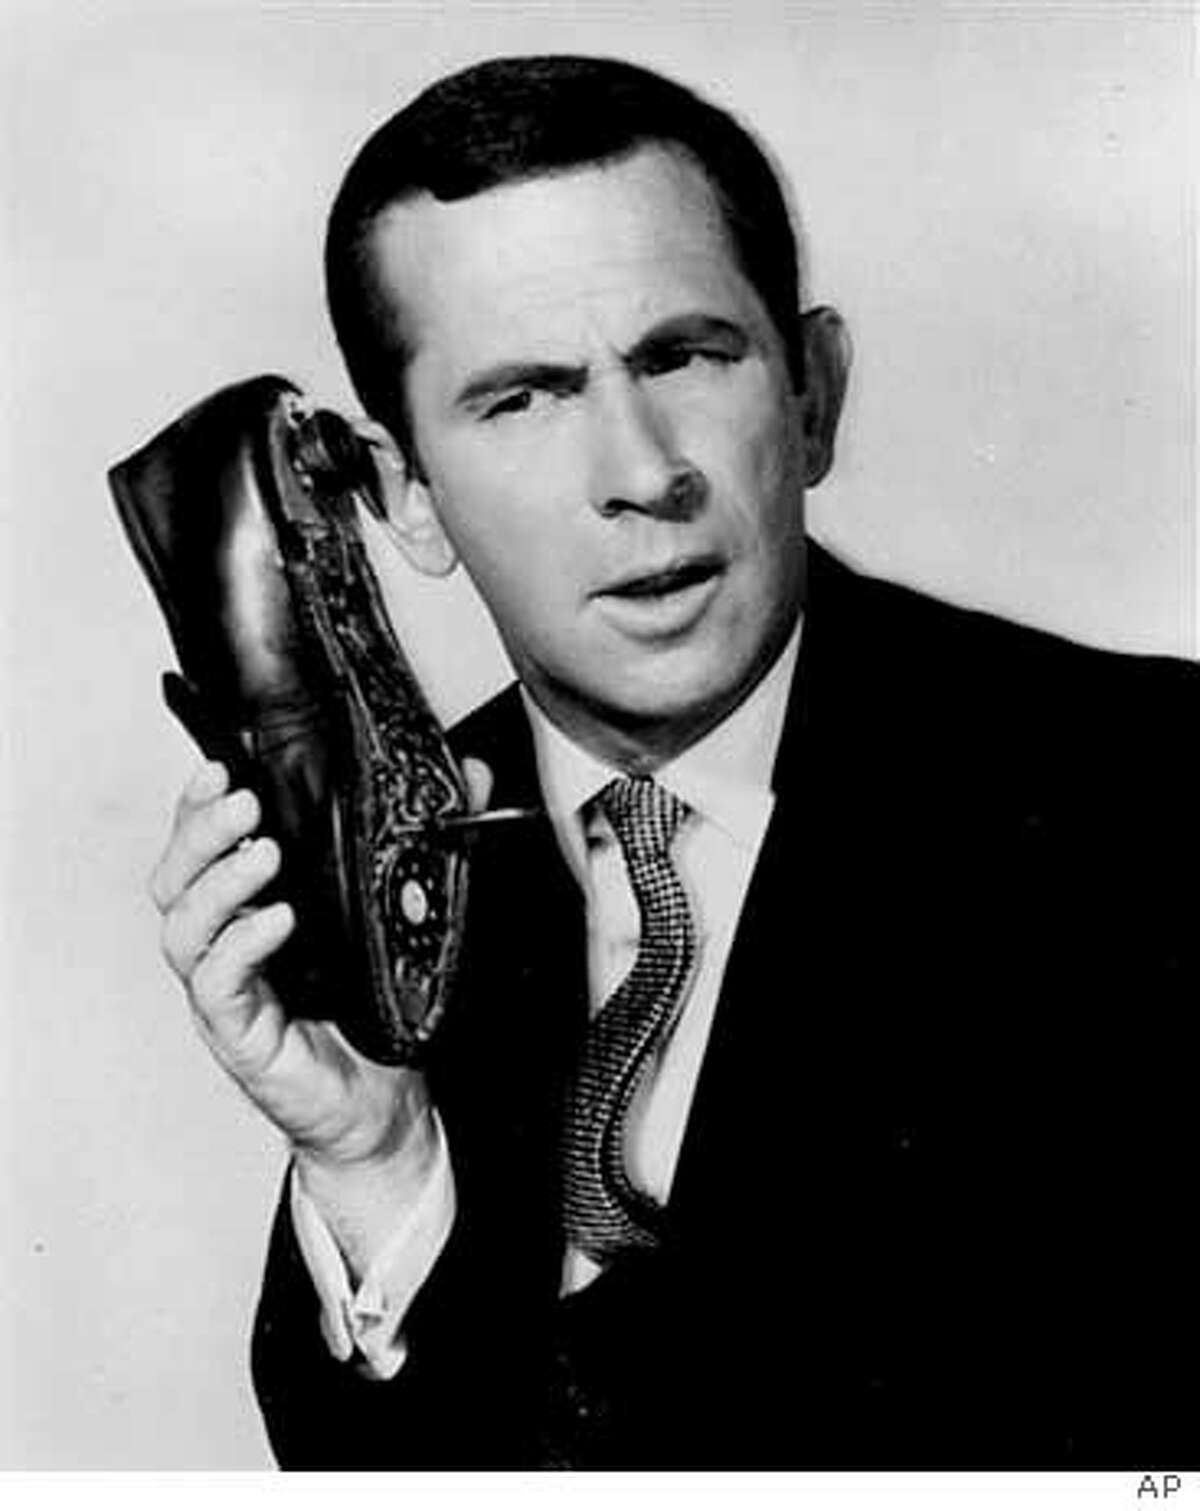 """In this undated file photo, Don Adams is seen in character as Maxwell Smart. Adams, the wry-voiced comedian who starred as the fumbling secret agent Maxwell Smart in the 1960s TV spoof of James Bond movies, """"Get Smart,"""" died of a lung infection late Sunday, Sept 25, 2005 in Los Angeles. He was 82. (AP Photo) Ran on: 09-27-2005 Ran on: 09-27-2005"""